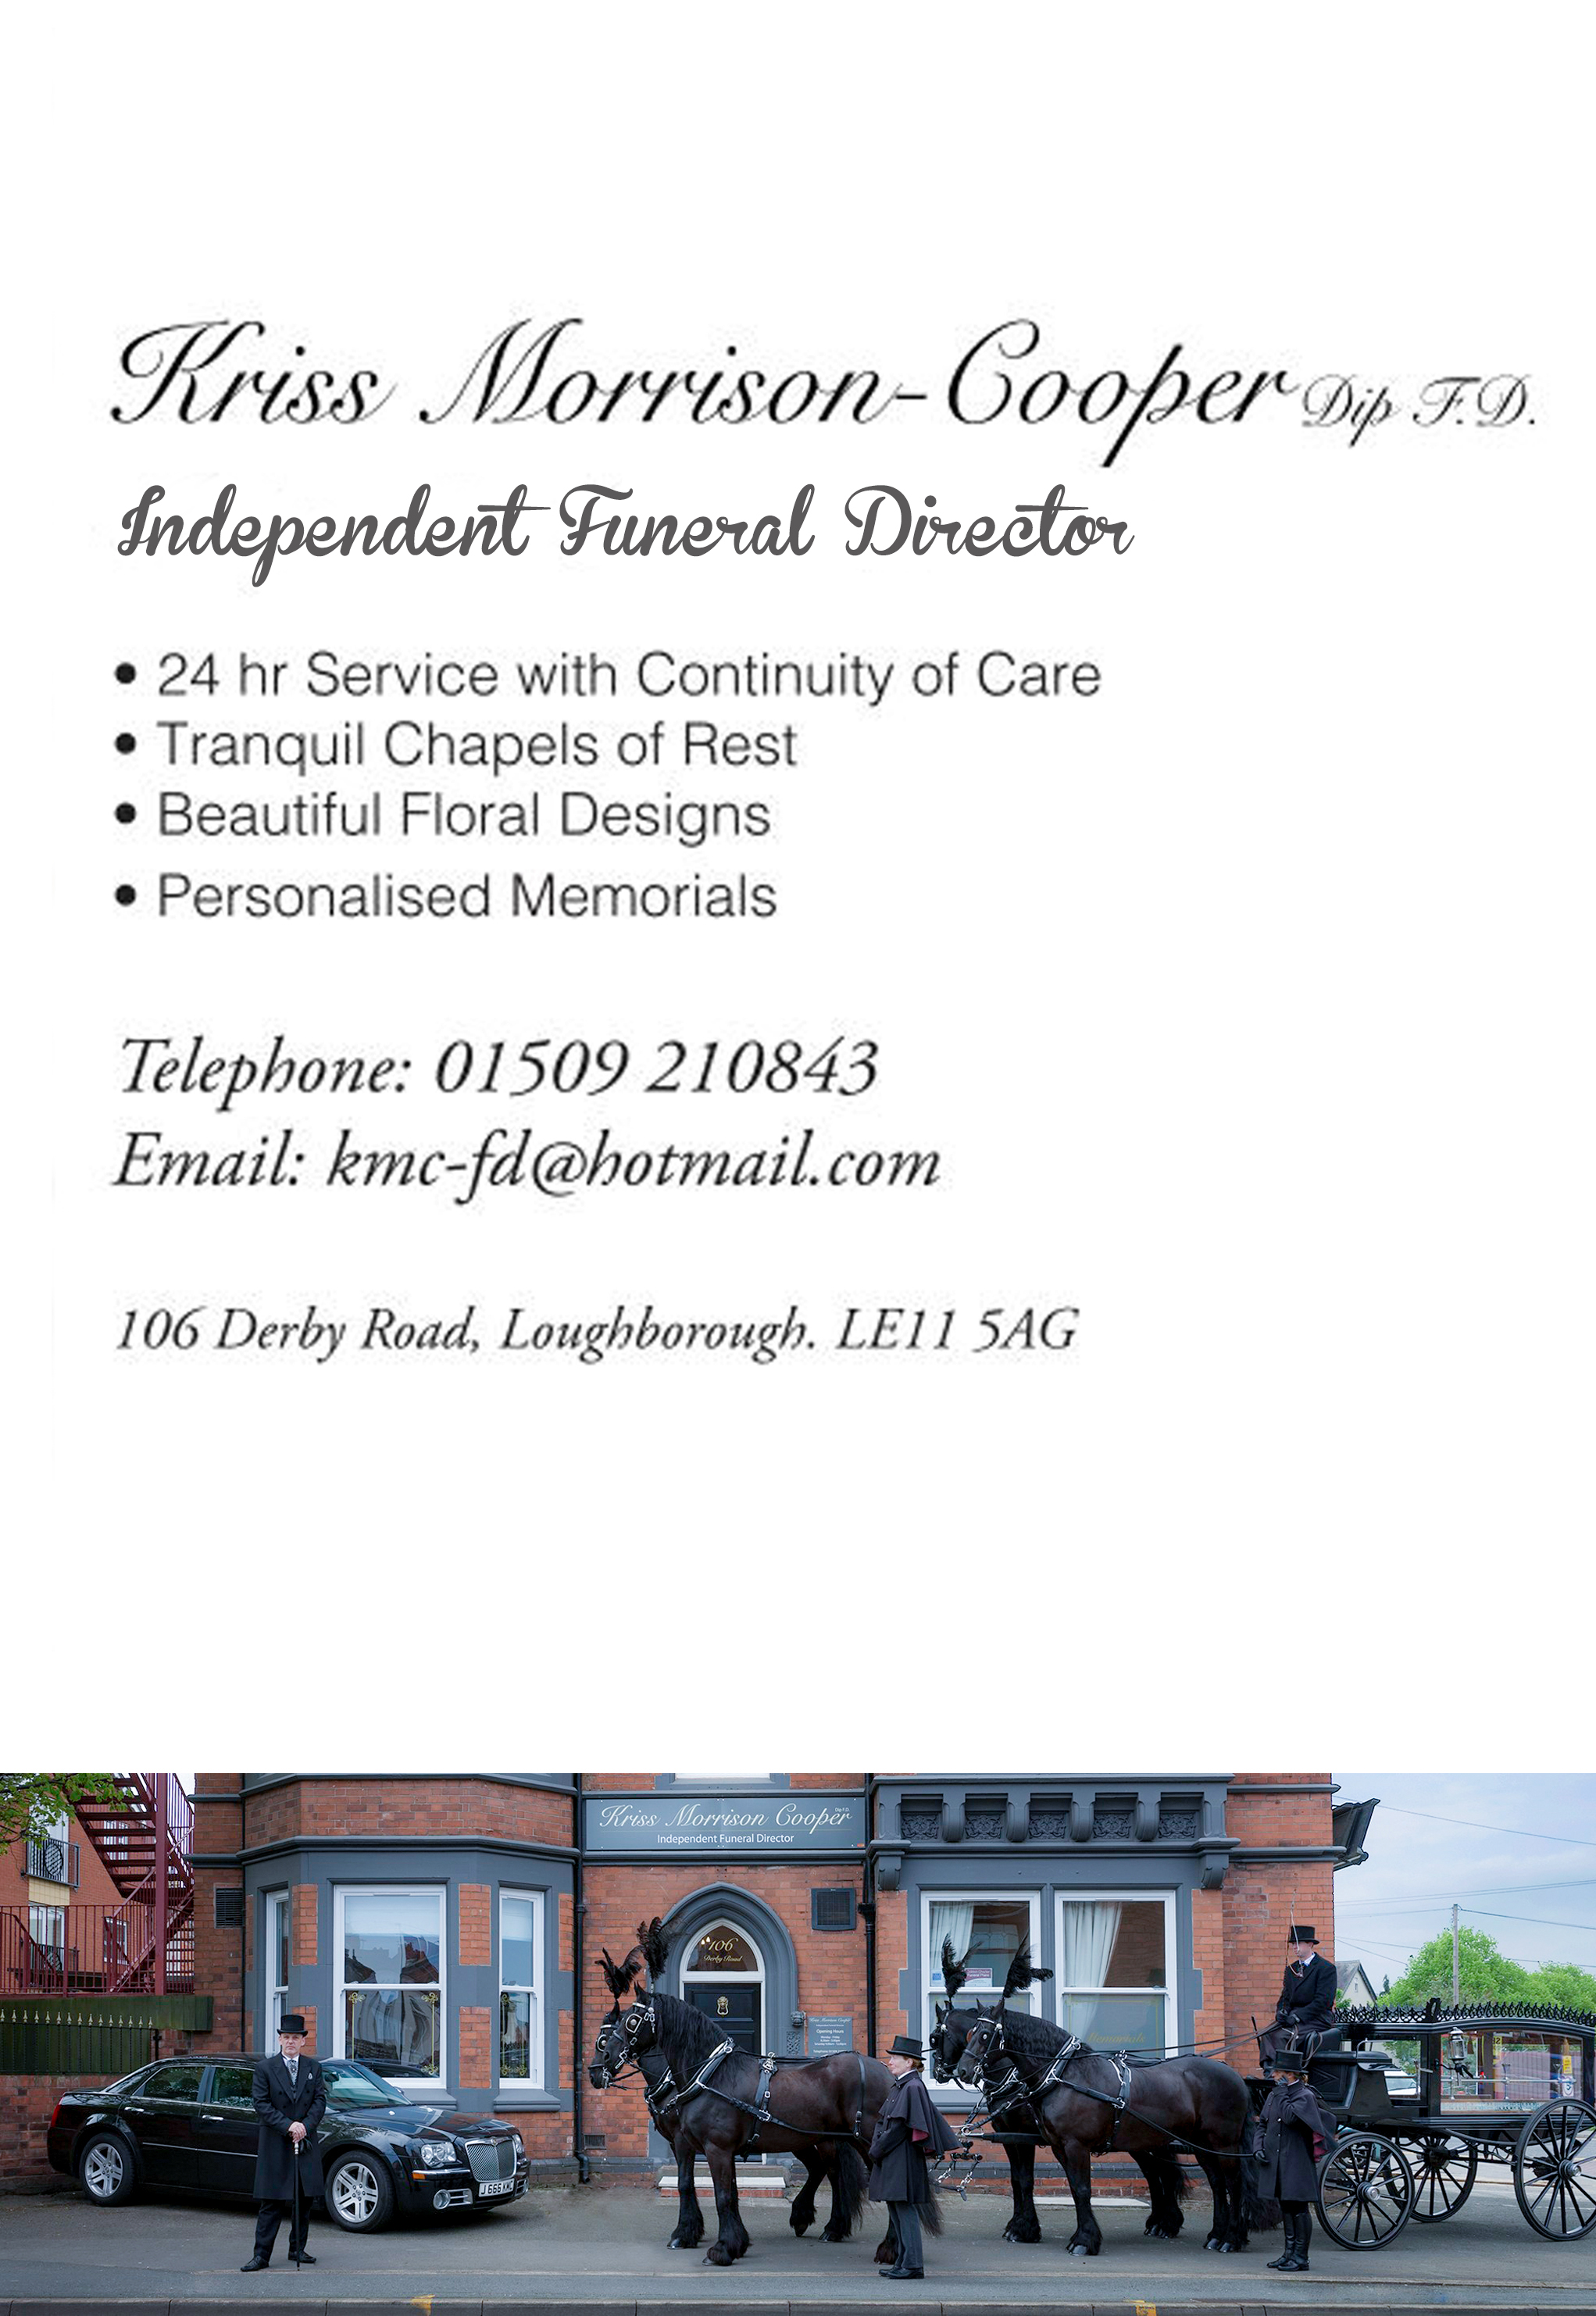 Text information about Kriss Morrison-Cooper funereal director. Images of horse-drawn carriage with horses and service vehicles.